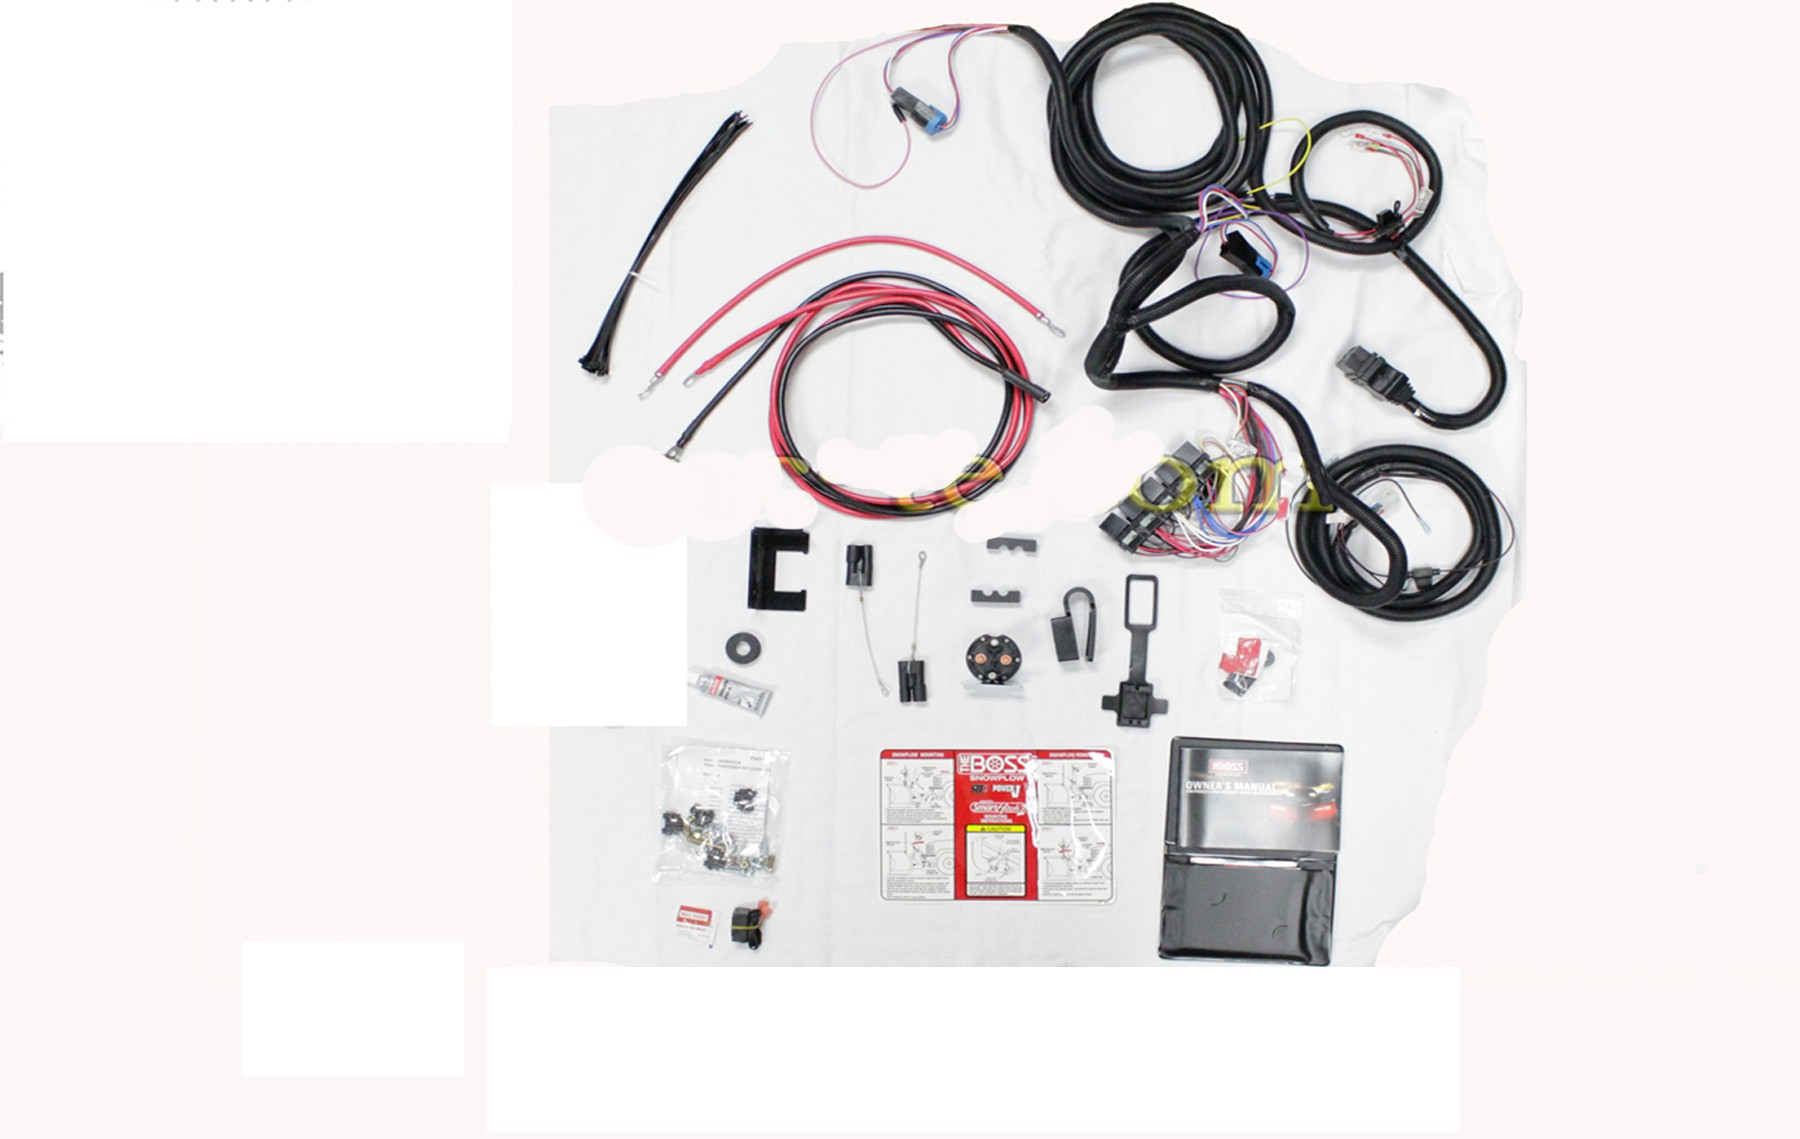 Boss Plow Wiring Diagram Gmc - Wiring Solutions